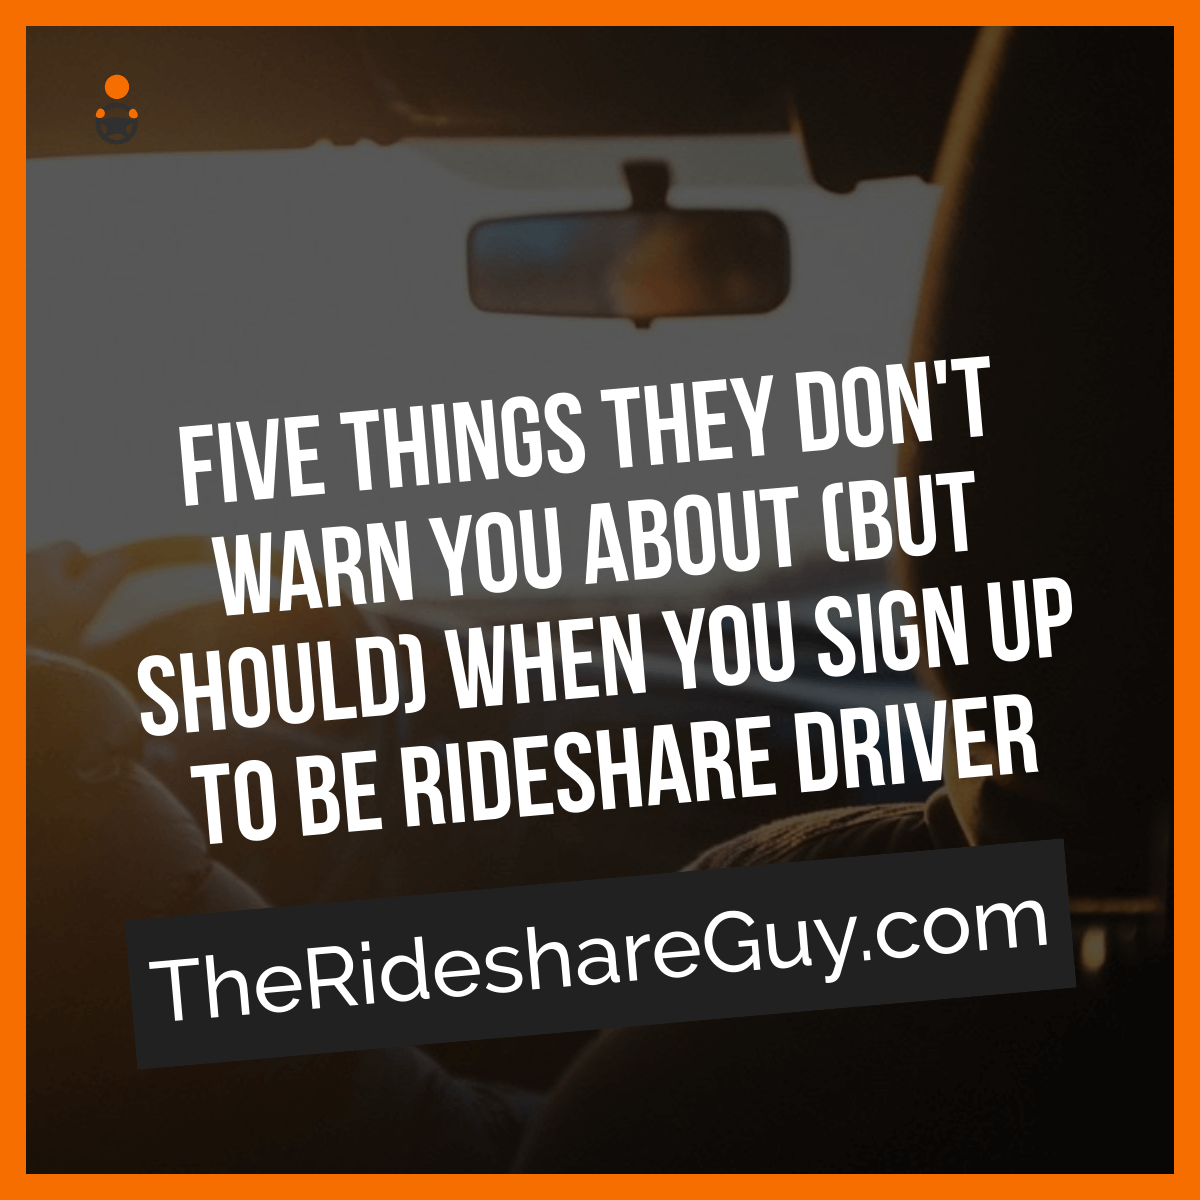 What's the craziest thing that has ever happened to you while rideshare driving? If you're a new driver (or just curious about what's happened to other drivers), we had senior RSG contributor John Ince share some of the 5 things/passengers rideshare companies should warn you about (but don't!) before rideshare driving.